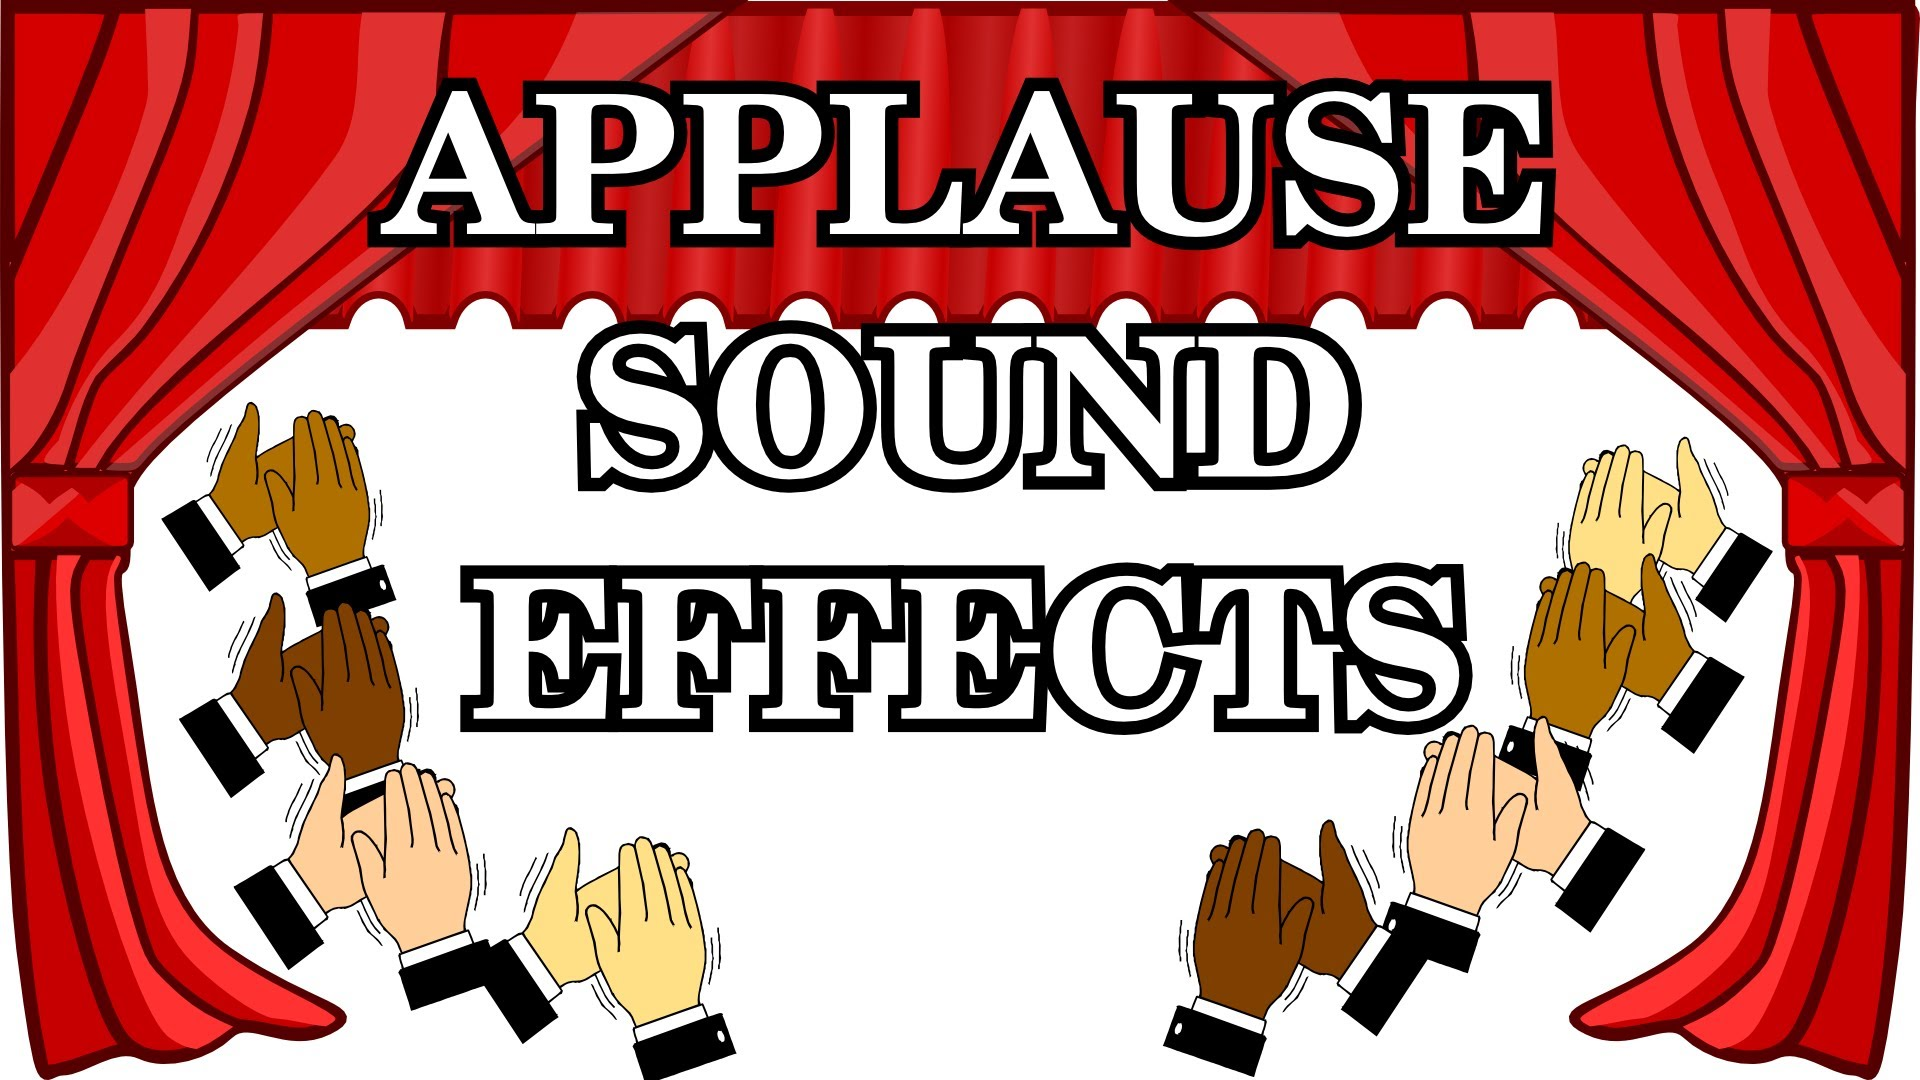 Effects . Applause clipart sound effect